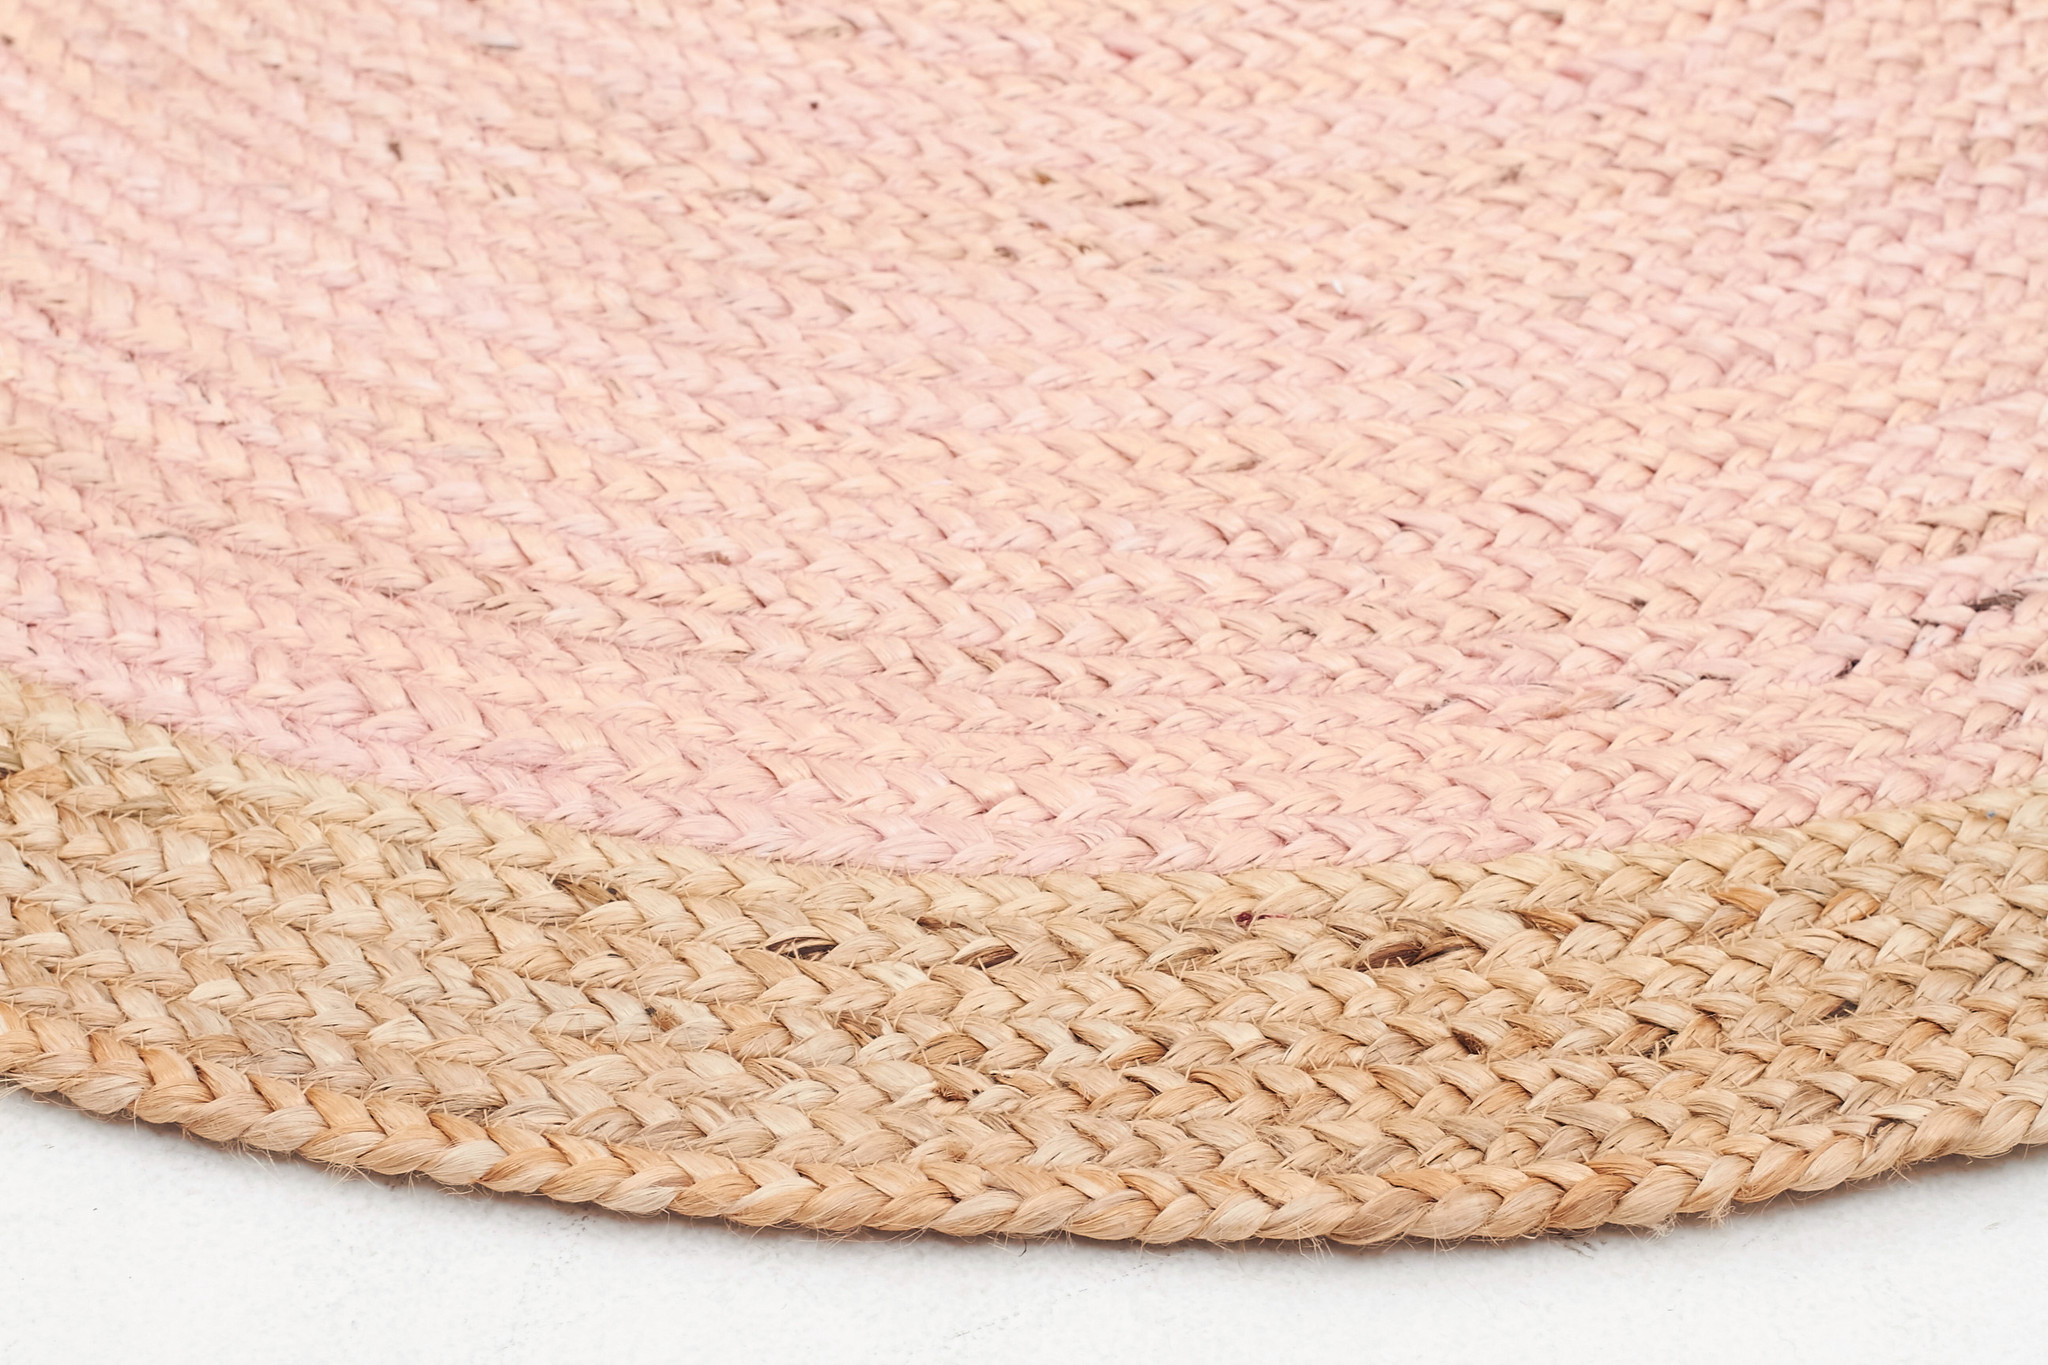 appealing rugs home blackfetching improvement natural round spotlight inspiration elsinore jute and fetching as decor kmart your rug